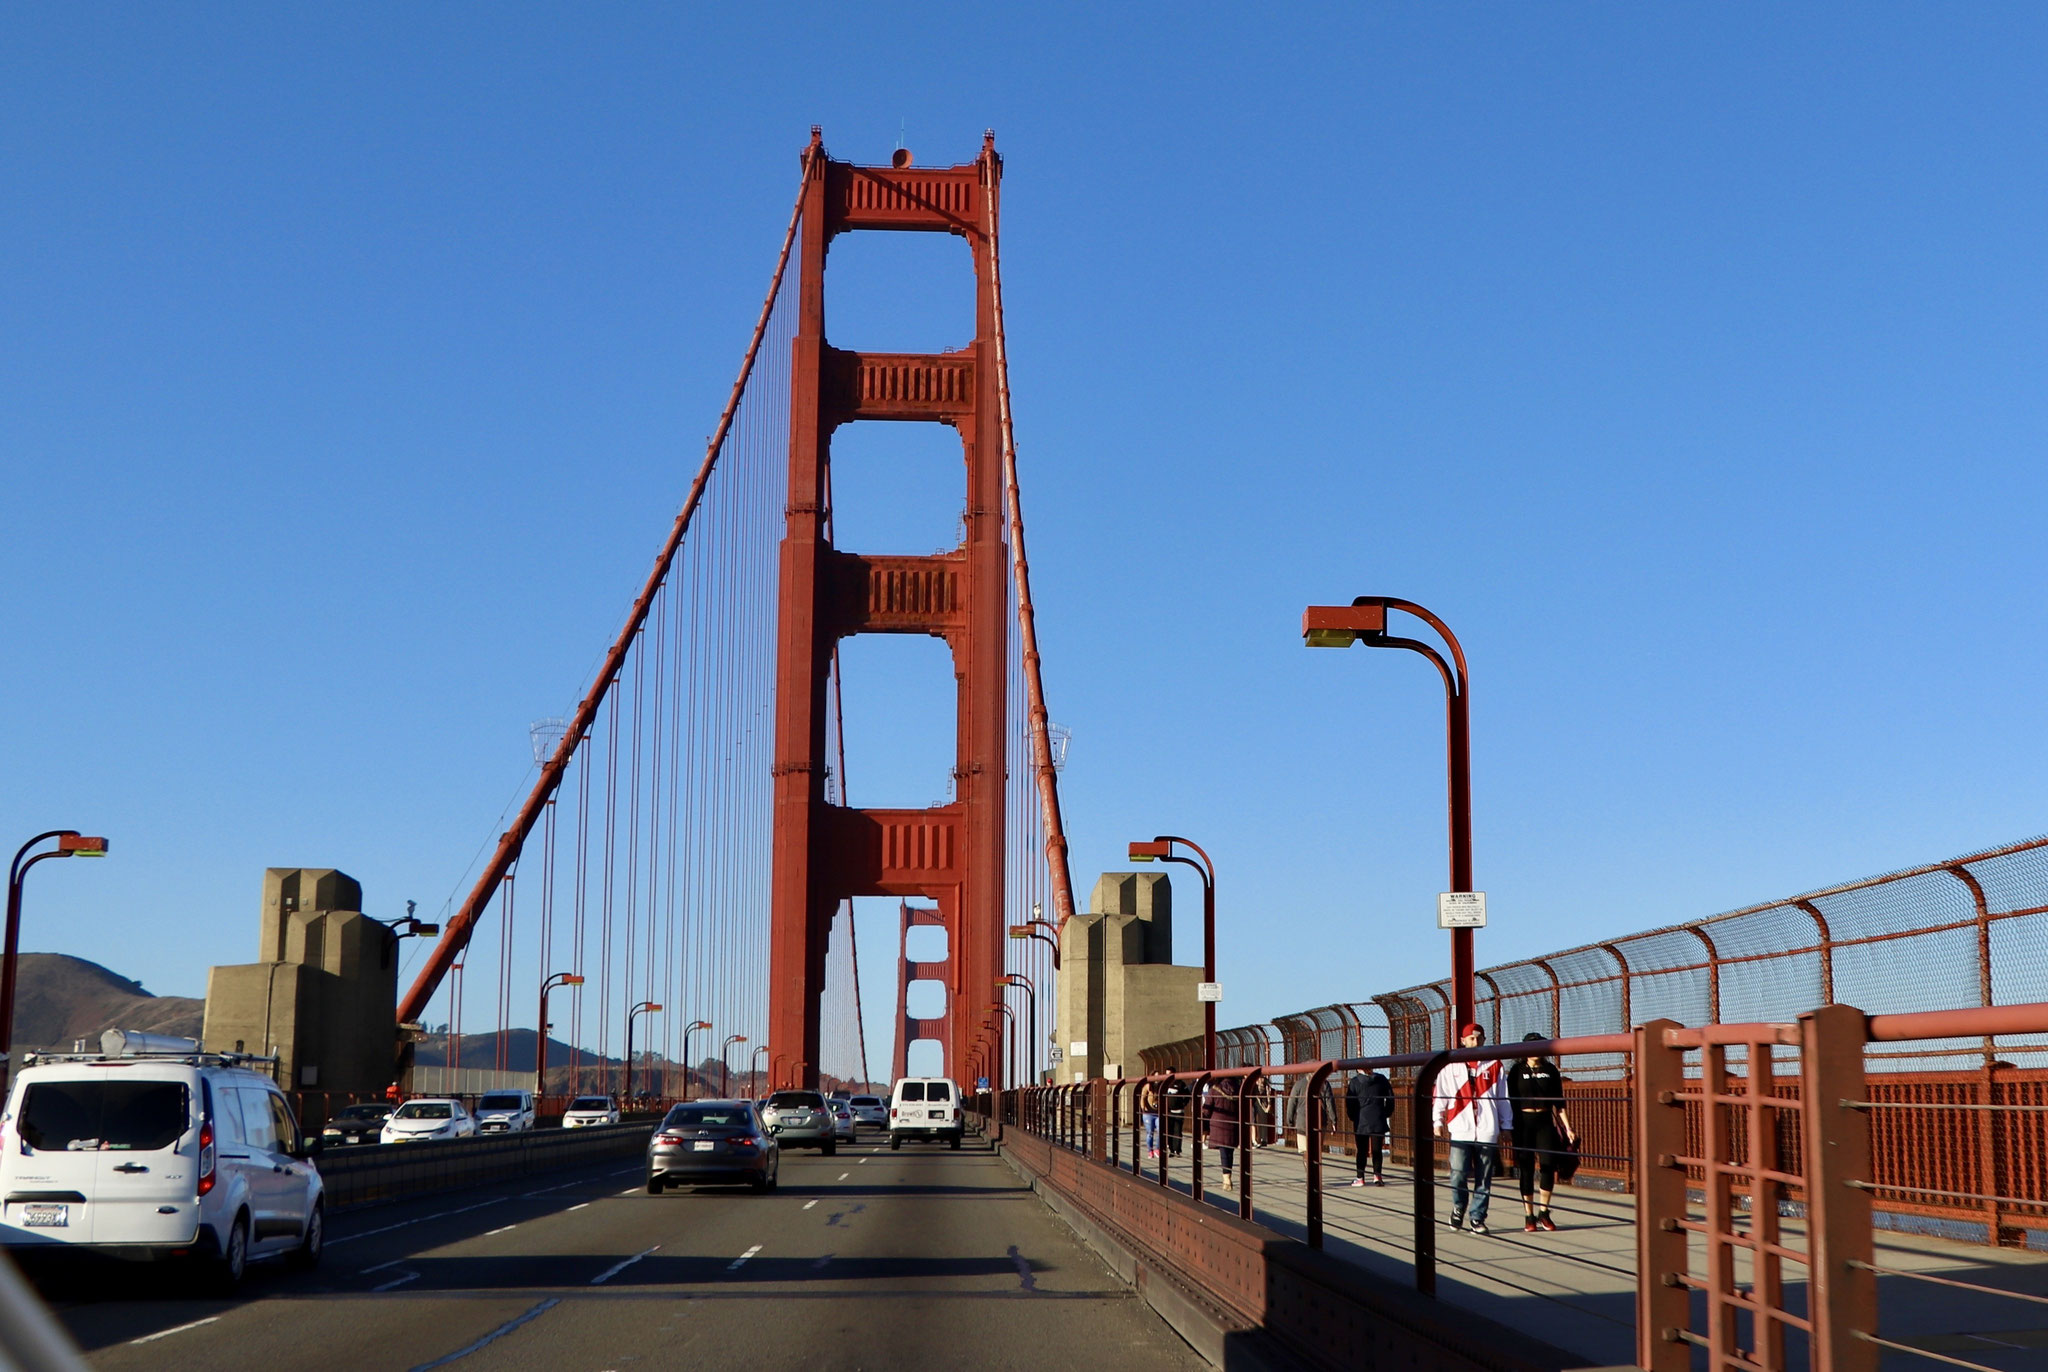 We are on the Golden Gate Bridge heading north up Highway 1